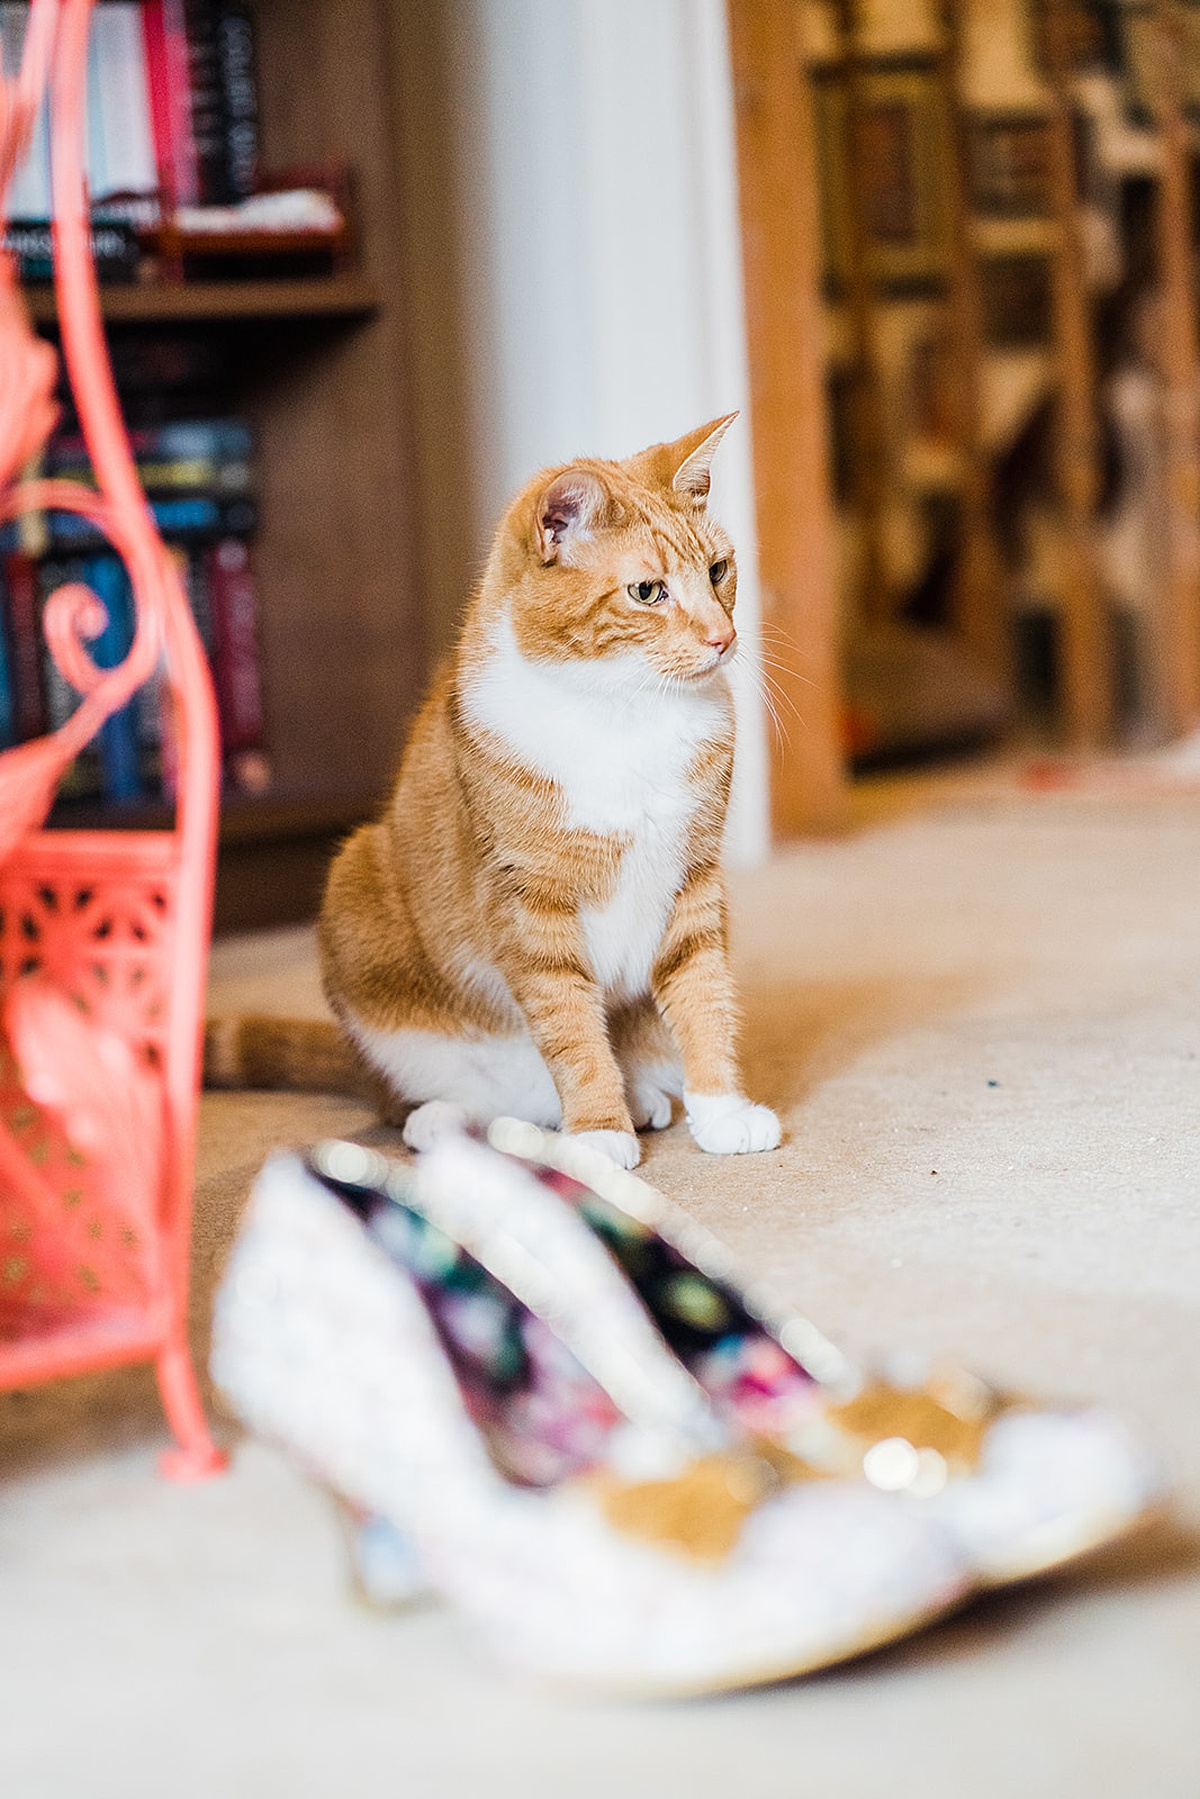 Ginger and White Cat sat near a pair of white wedding shoes - photo taken by Parrot and Pineapple Wedding Photography